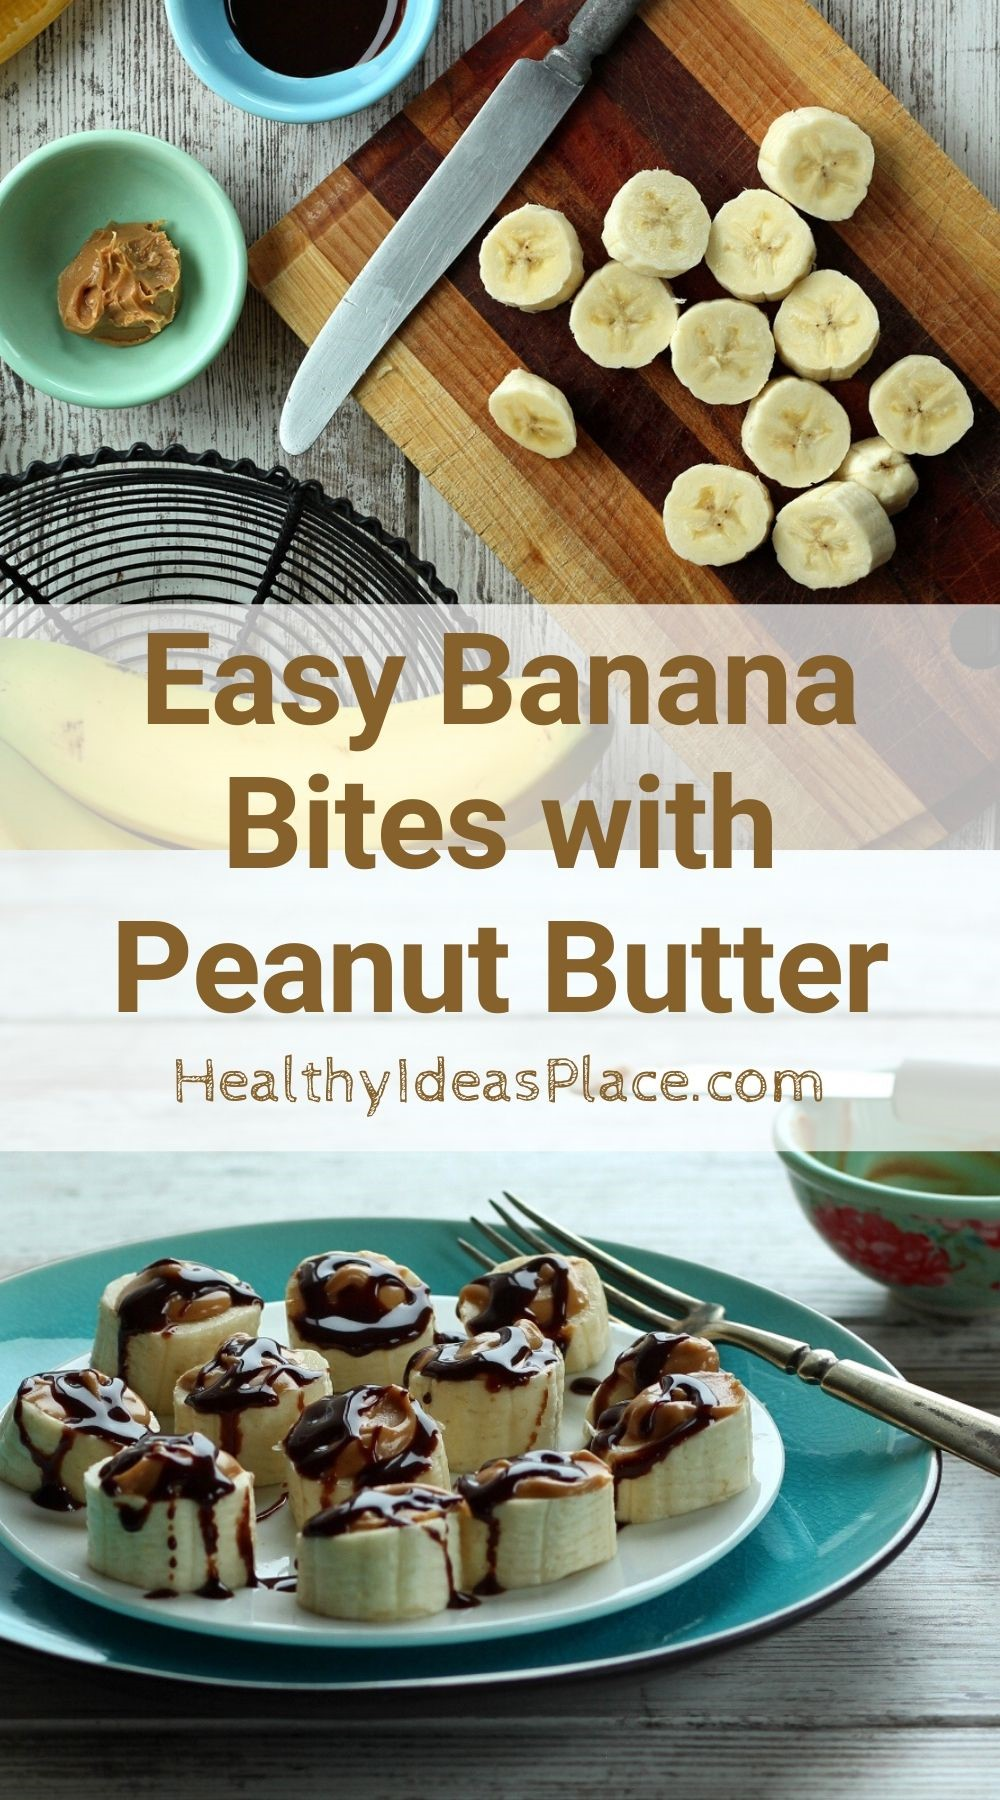 collage photo of banana slices on cutting board and slices topped with peanut butter and chocolate on white plate